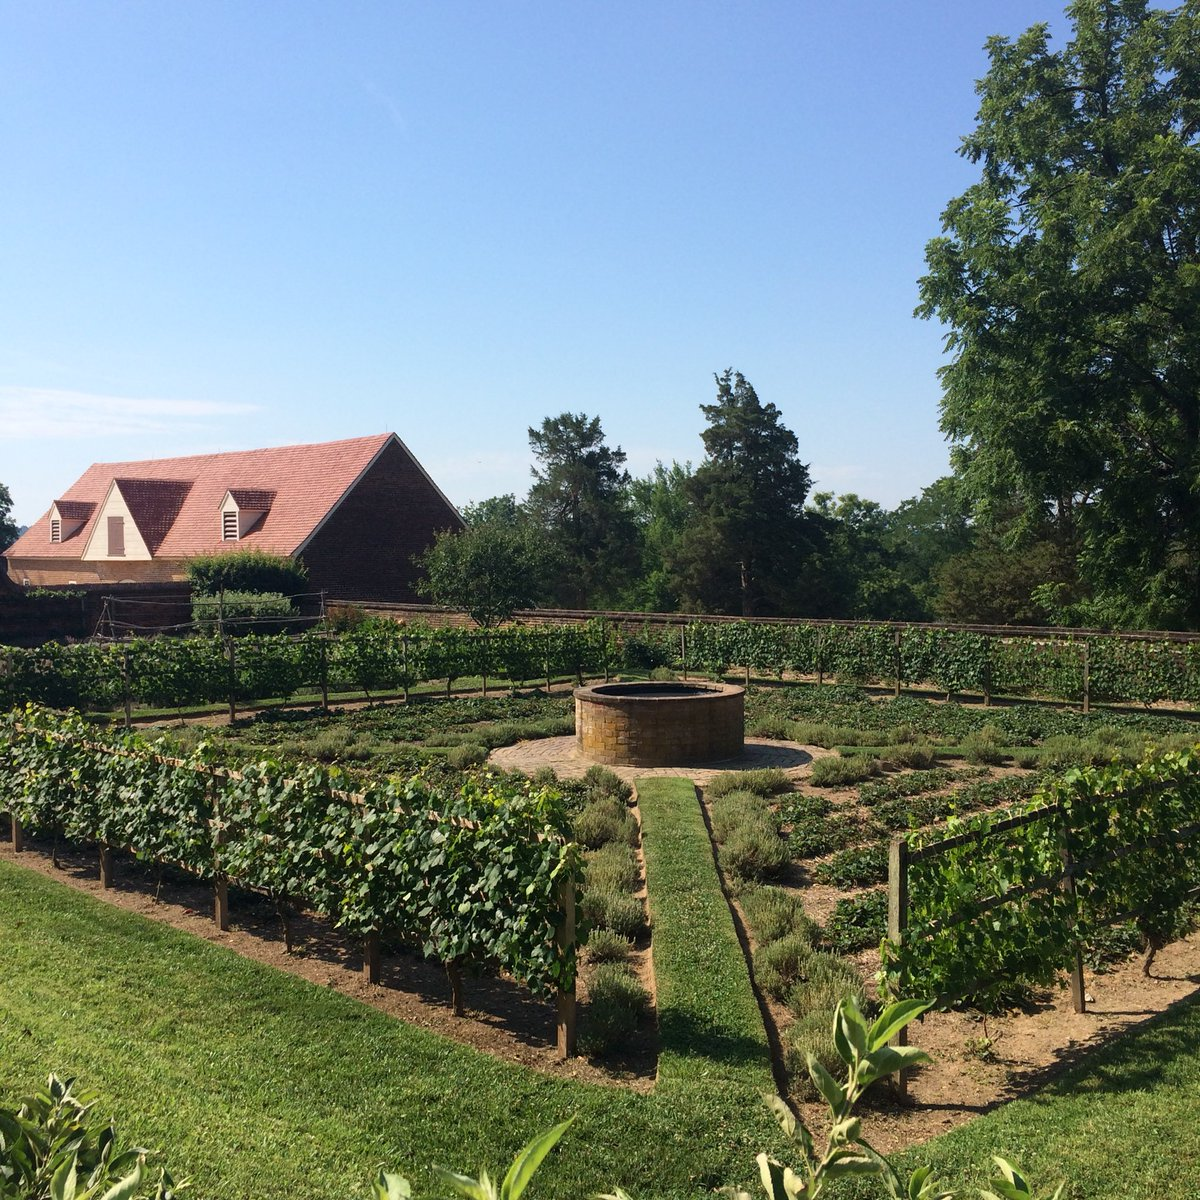 Vines and fig trees in the Lower Garden at George Washington's @MountVernon